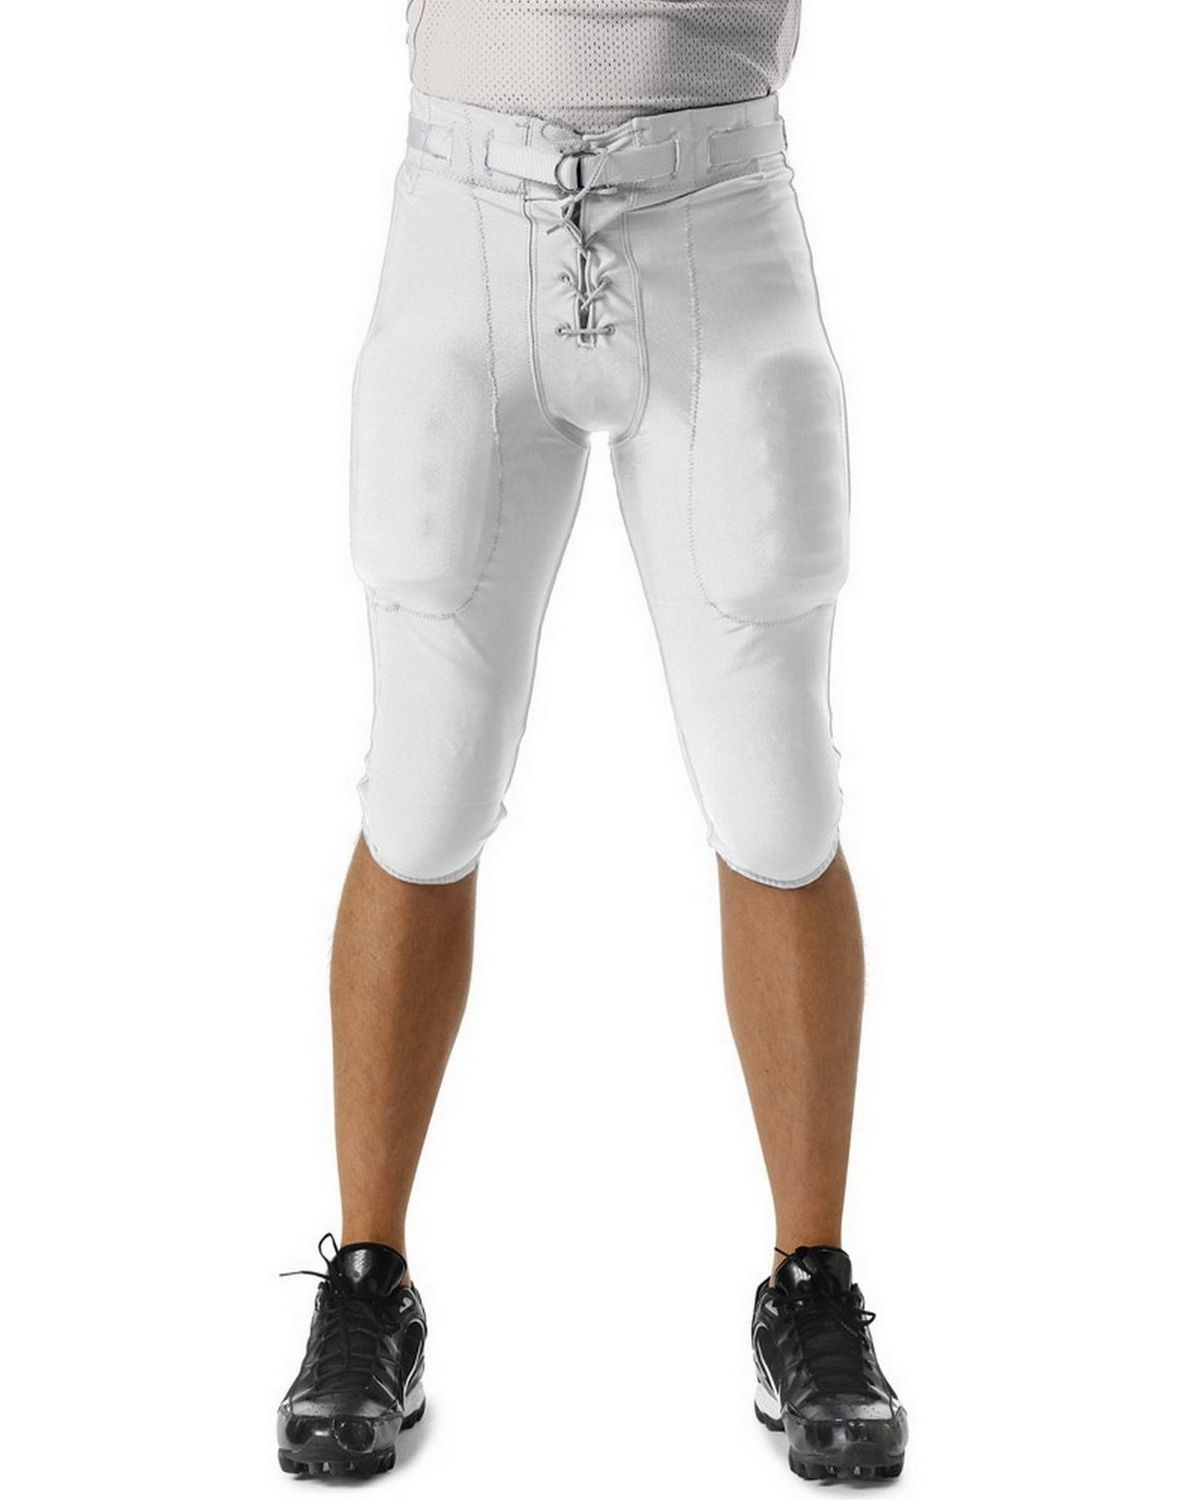 A4 NB6141 Youth Game Pant